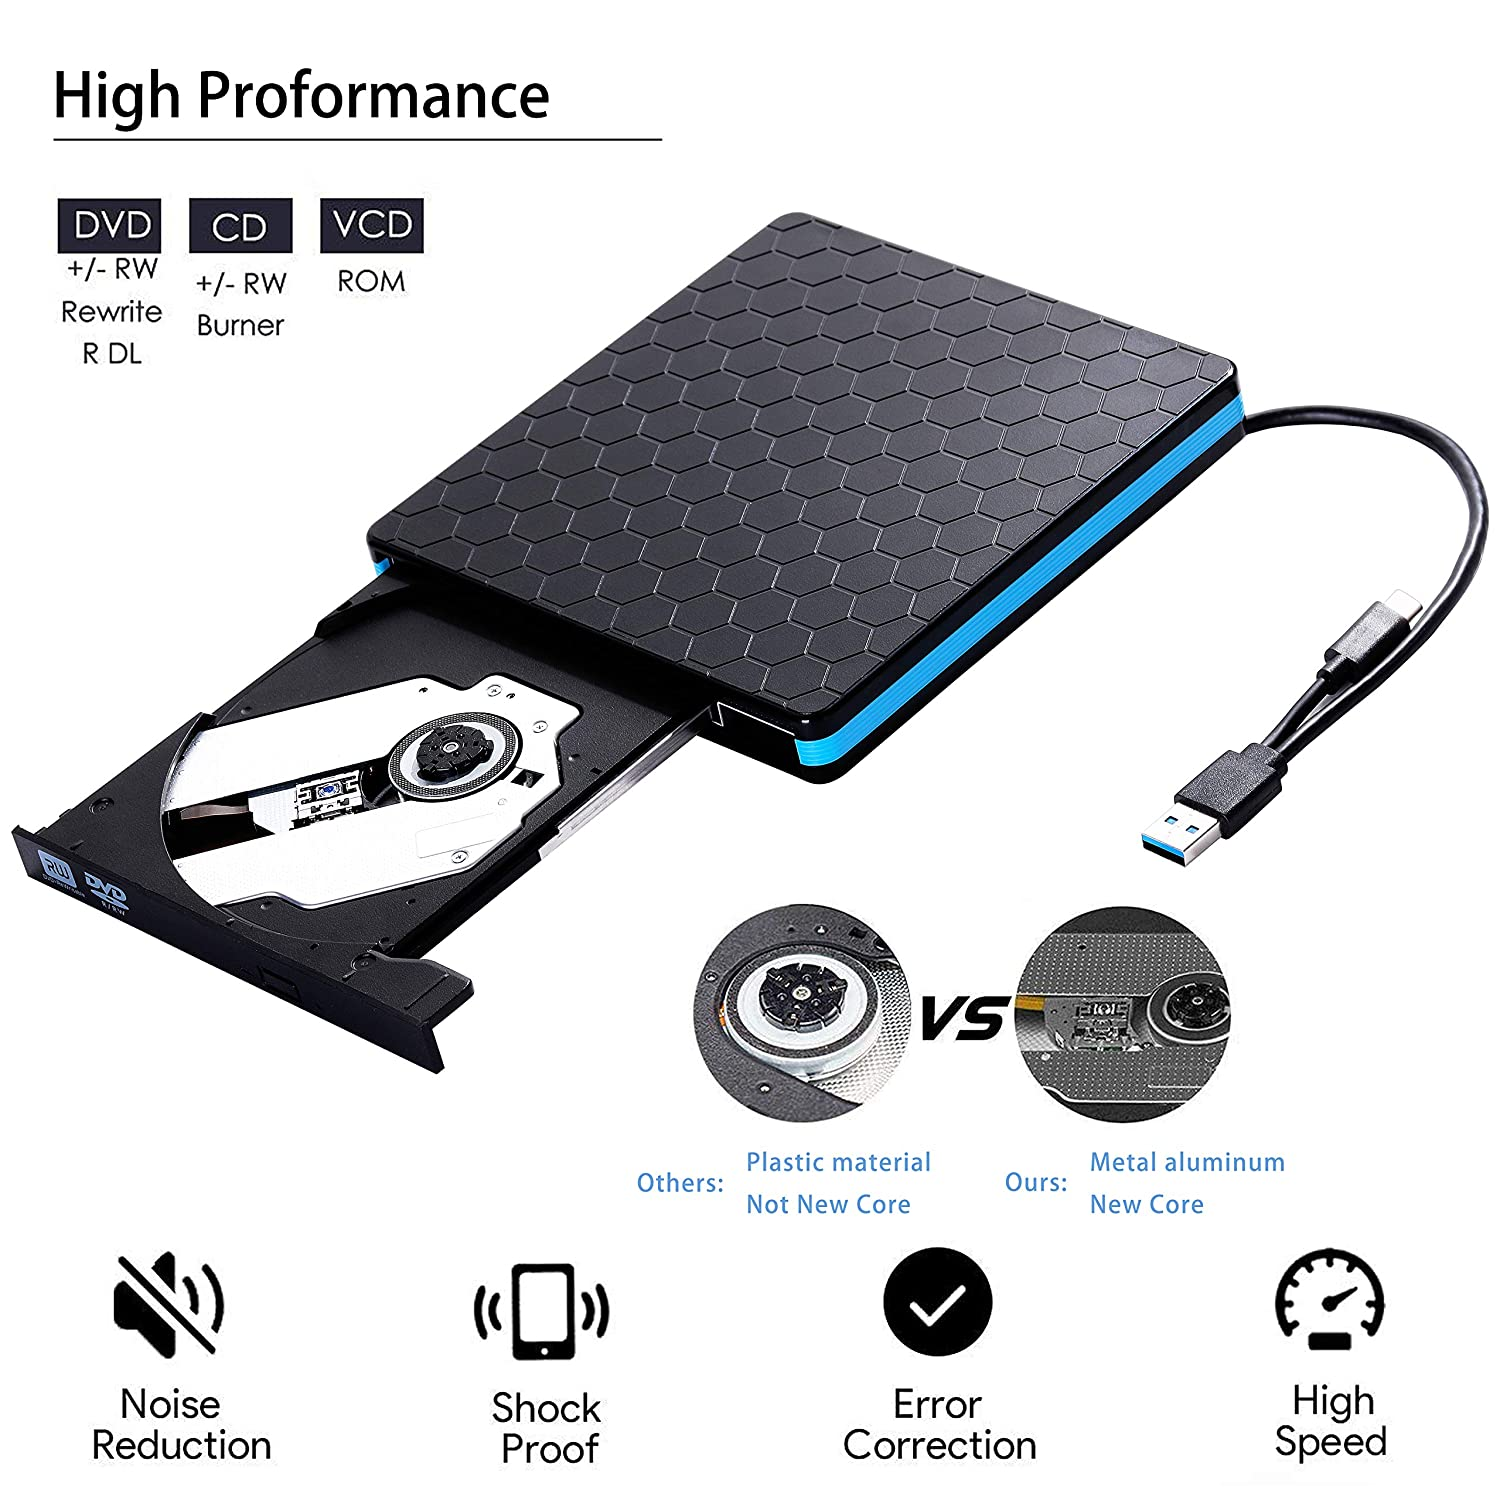 AOKUP Graveur DVD Externe USB 3.0 Lecteur CD Externe Portable USB C CD DVD +/-RW ROM Player Compatible con Windows 10/8/7/XP/ Vista, Laptop, Desktop, PC, ...